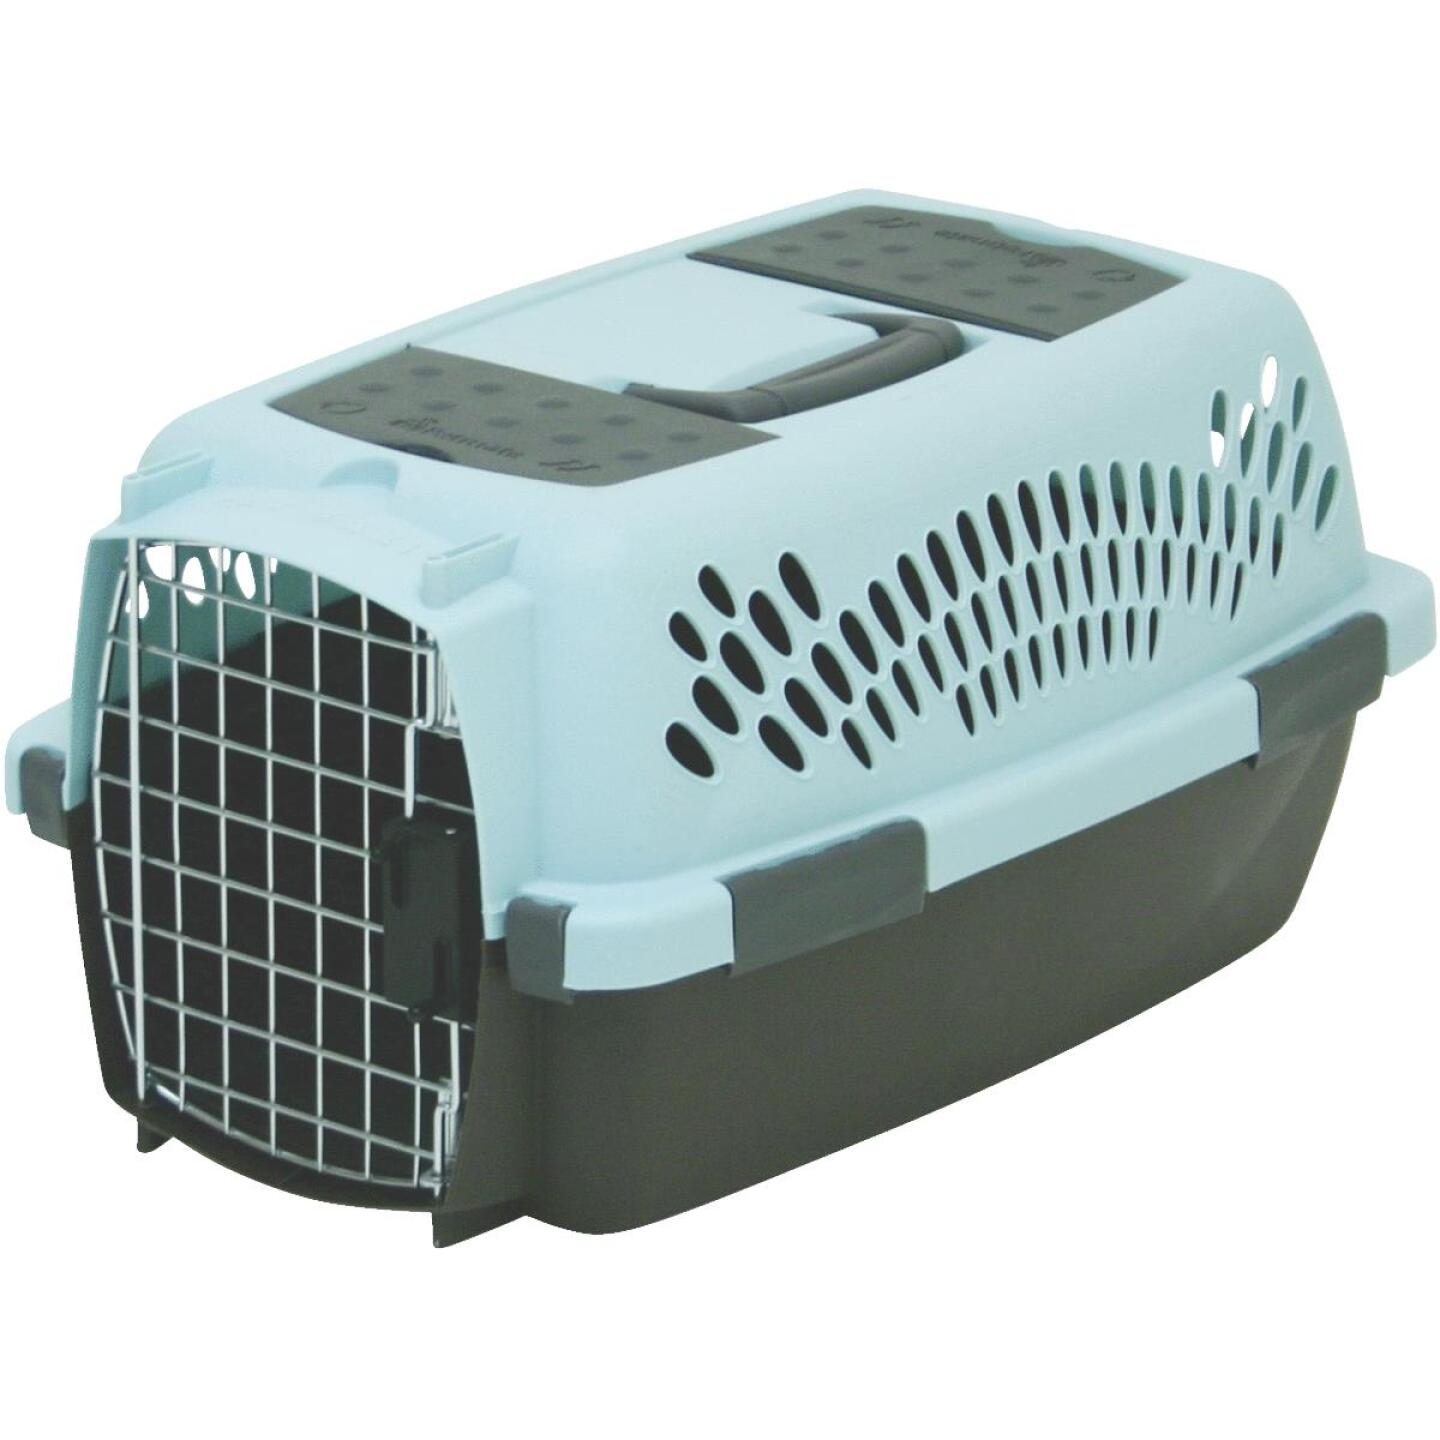 Petmate Aspen Pet 19.25 In. x 12.56 In. x 10 In. Up to 10 Lb. Small Fashion Pet Porter Image 1